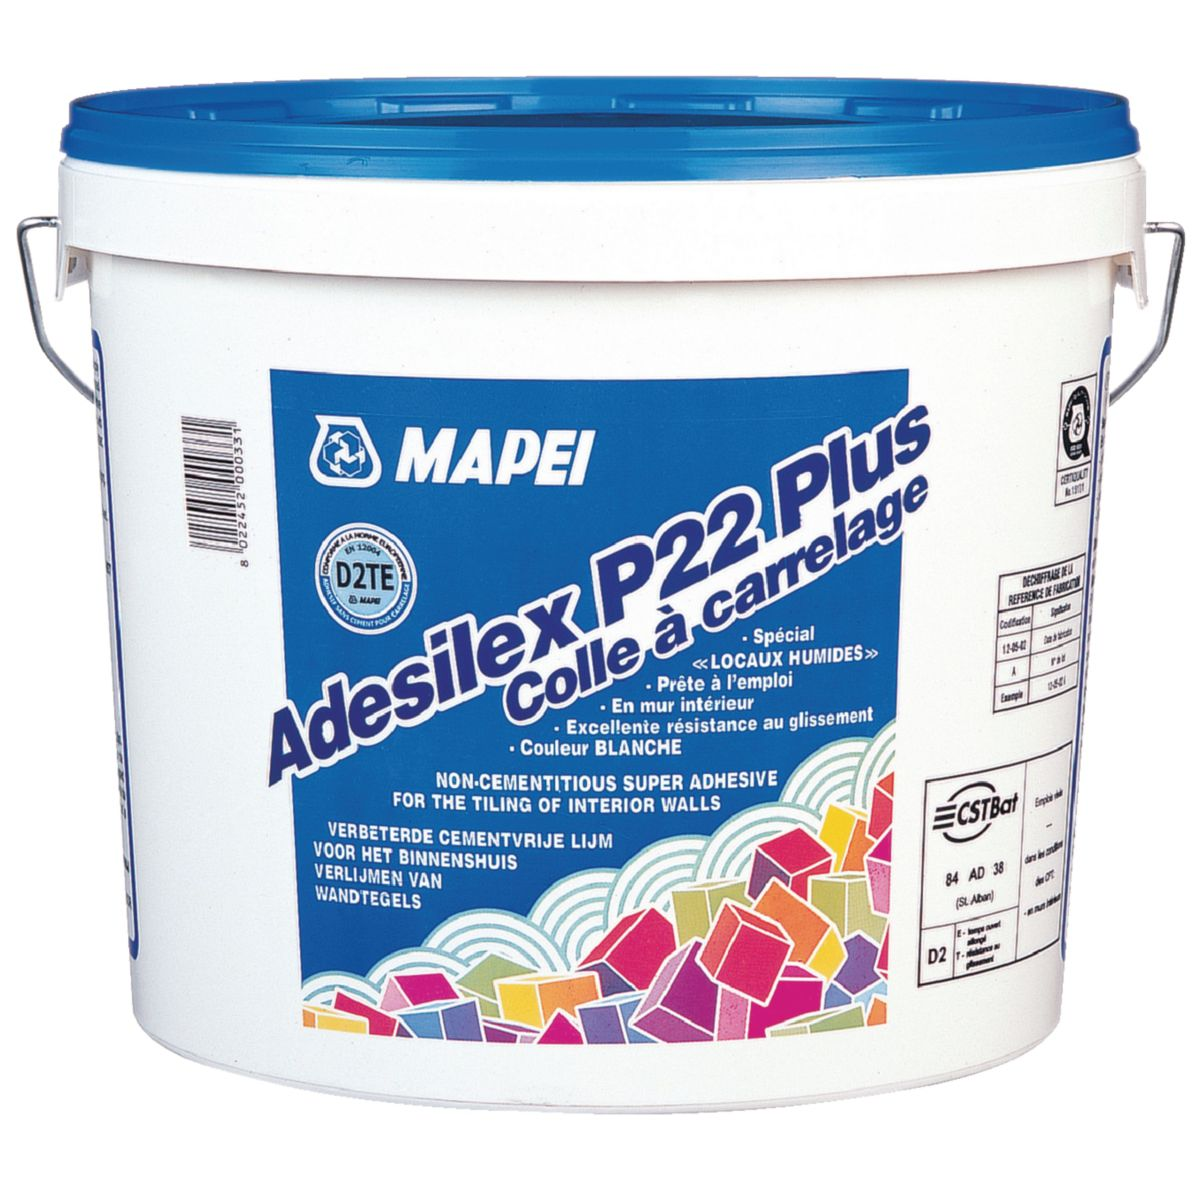 c82b25dd4d5 Tile adhesive paste - ADESILEX P22 PLUS - MAPEI FRANCE